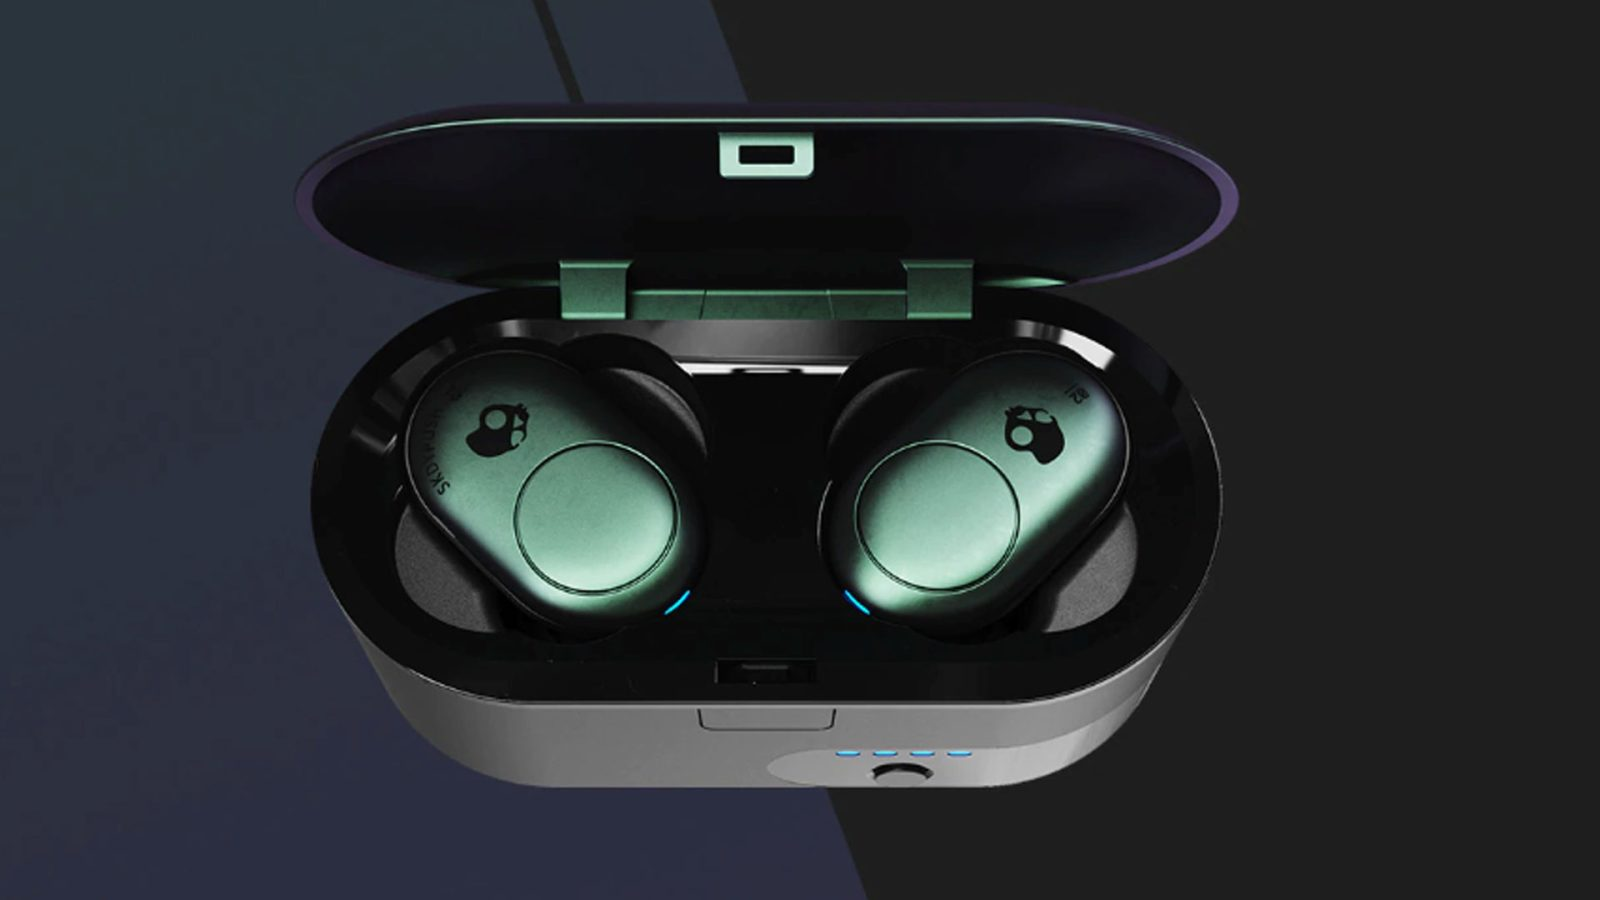 9to5toys New Gear Reviews And Deals Digital Alliance Mouse Gaming G7 Alpha Drak Gray Skullcandy Enters The Truly Wireless Earbuds Game With Push Offering 6 Hours Of Battery More